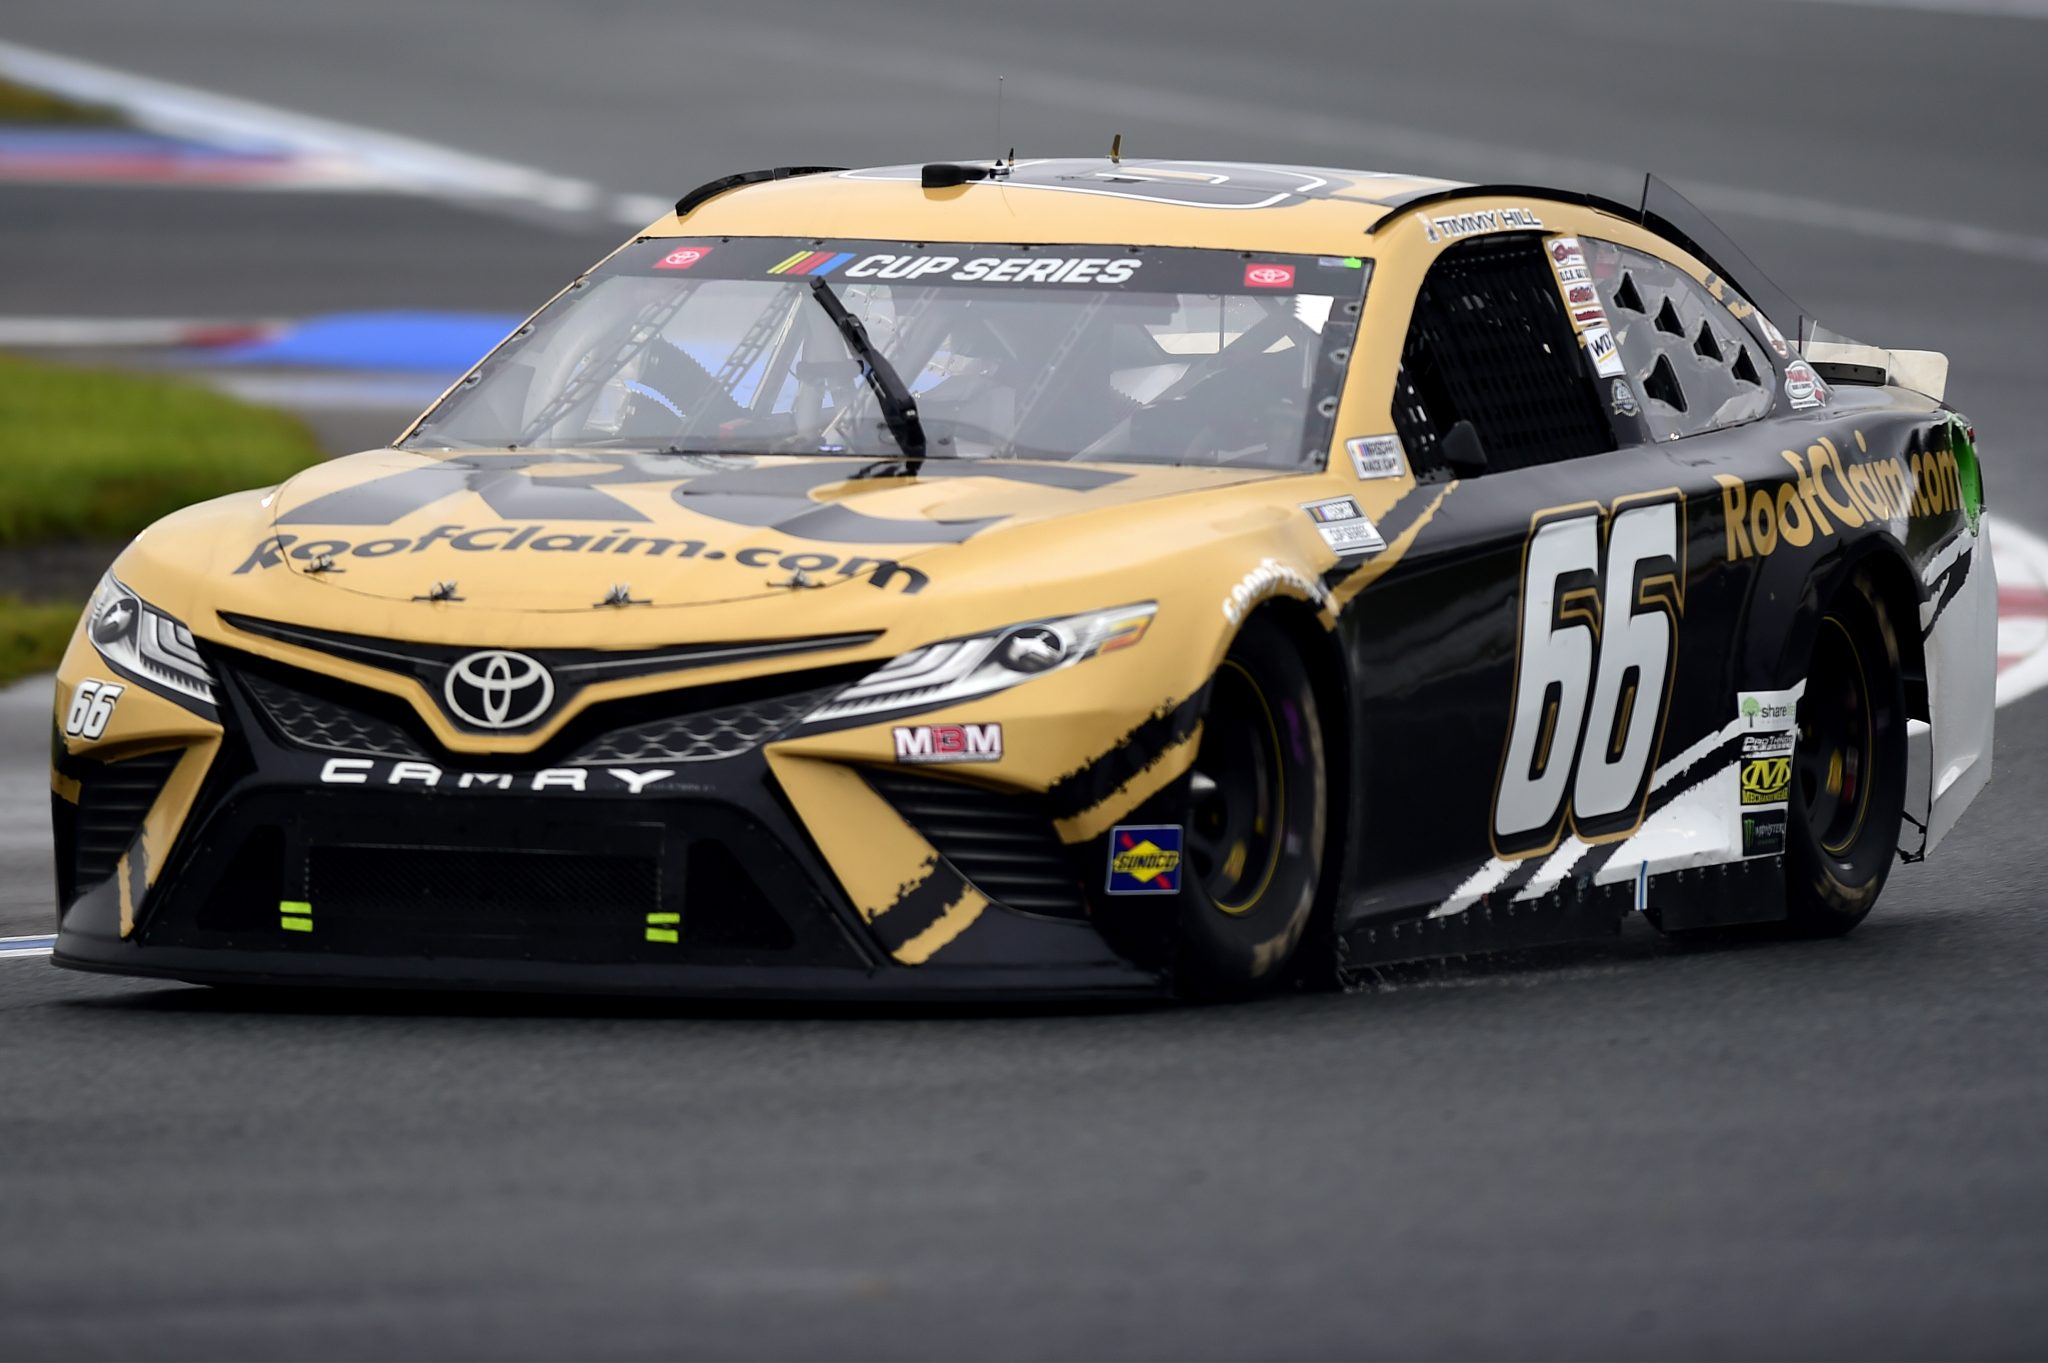 CONCORD, NORTH CAROLINA - OCTOBER 11: Timmy Hill, driver of the #66 RoofClaim.com Toyota, drives during the NASCAR Cup Series Bank of America ROVAL 400 at Charlotte Motor Speedway on October 11, 2020 in Concord, North Carolina. (Photo by Jared C. Tilton/Getty Images) | Getty Images